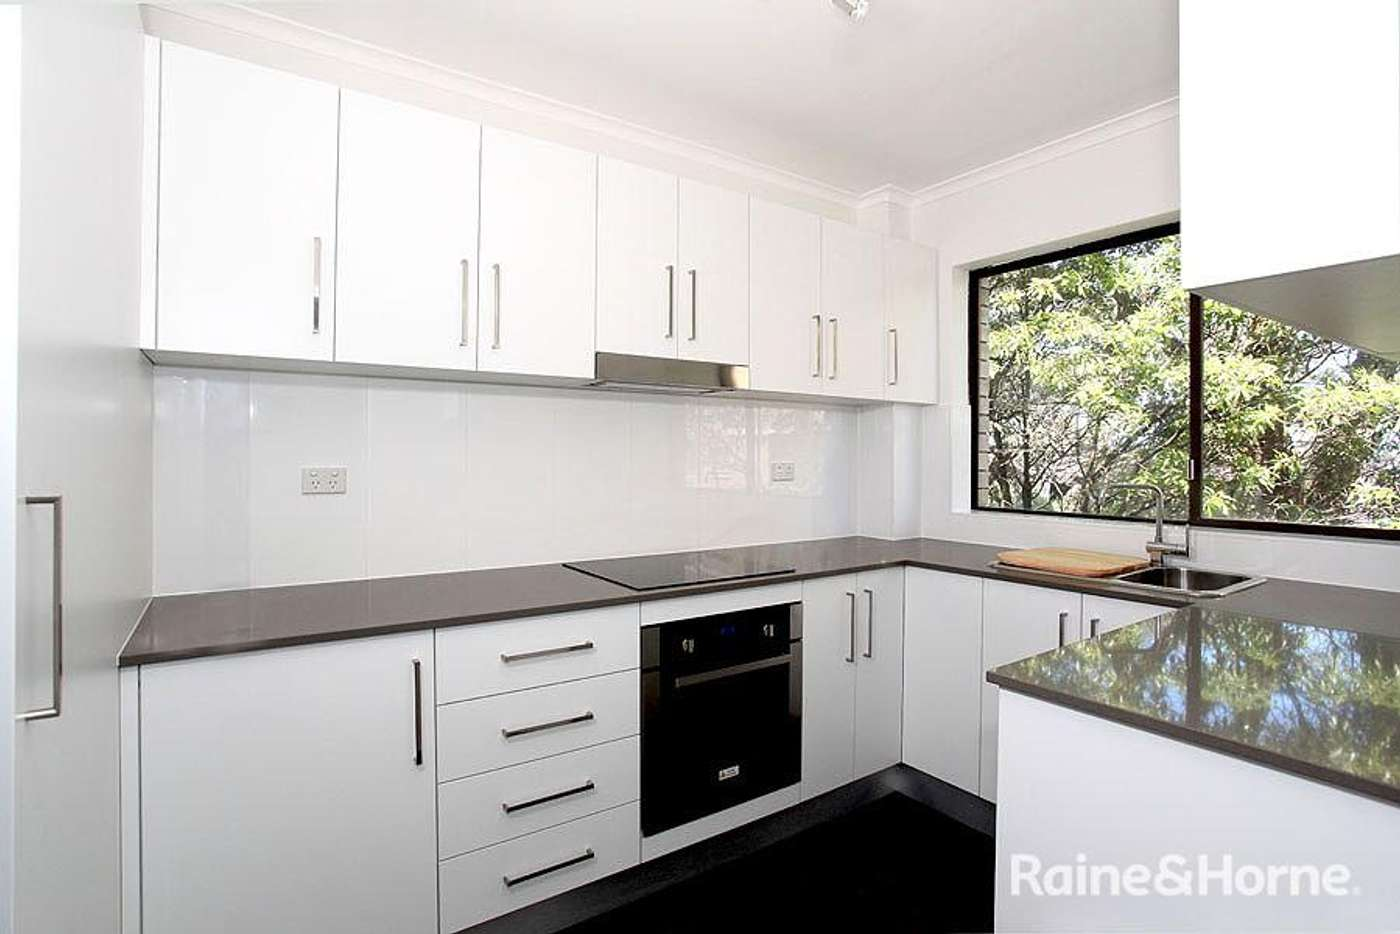 Main view of Homely apartment listing, 12/6-10 Lamont Street, Wollstonecraft NSW 2065